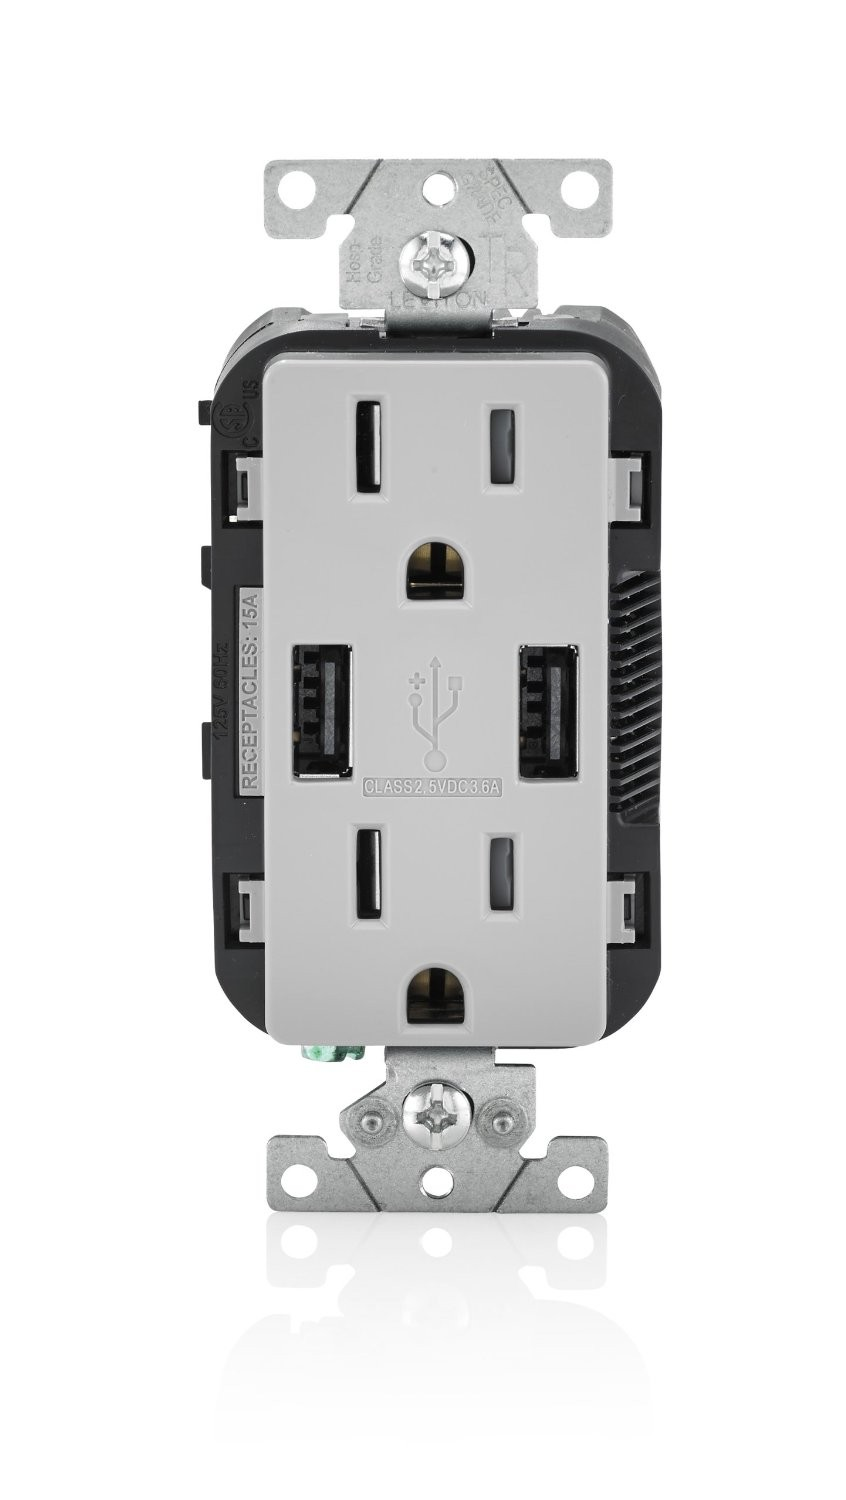 Leviton T5632-GY Electrical Outlet, 15A 125V Duplex Tamper-Resistant ...